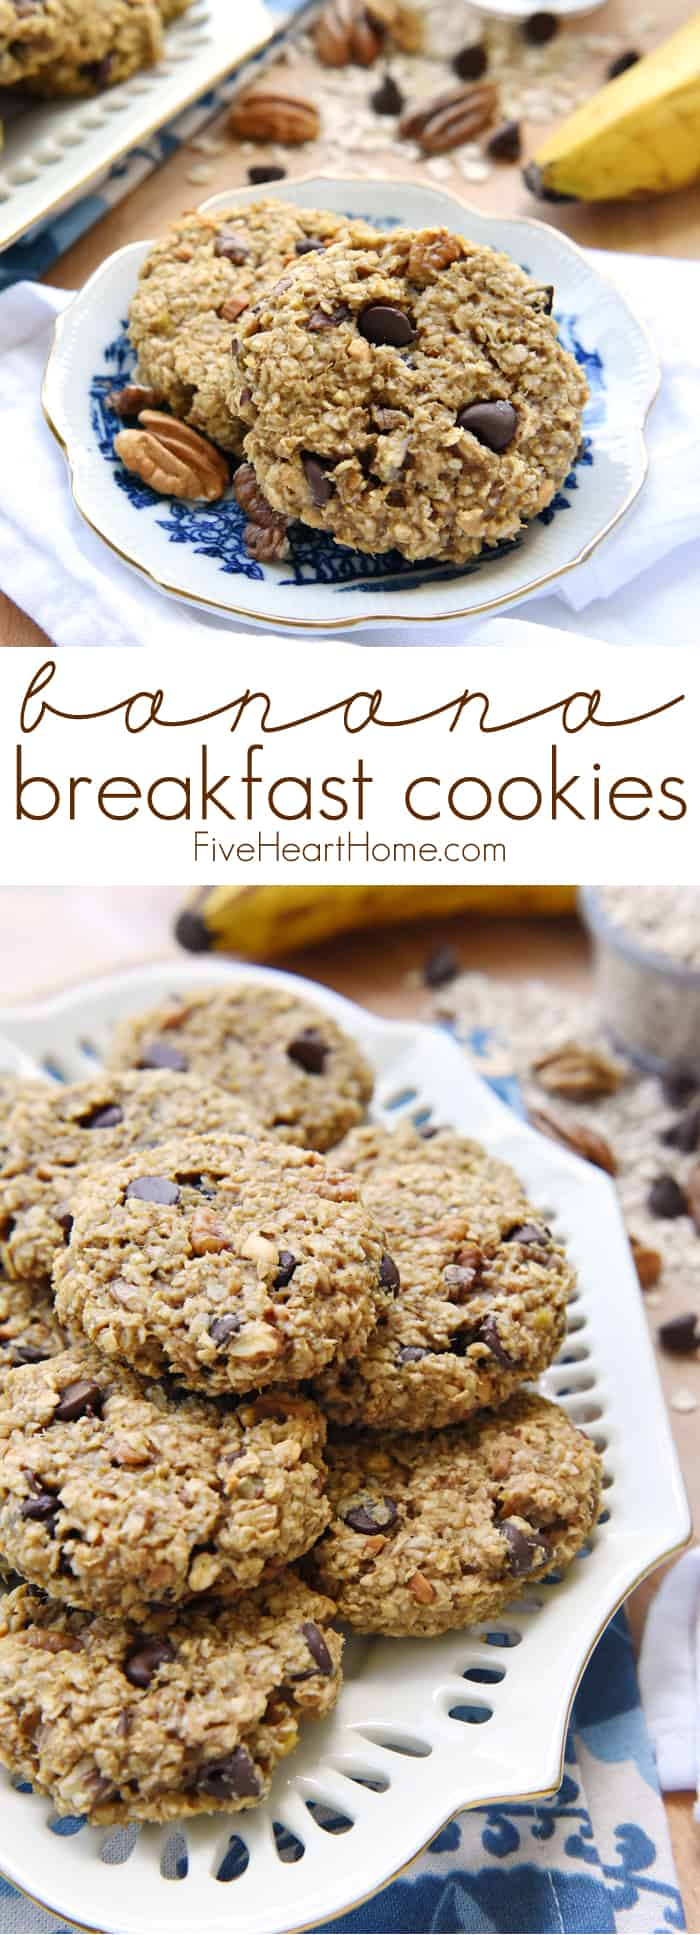 Banana Breakfast Cookies Collage with Text Overly